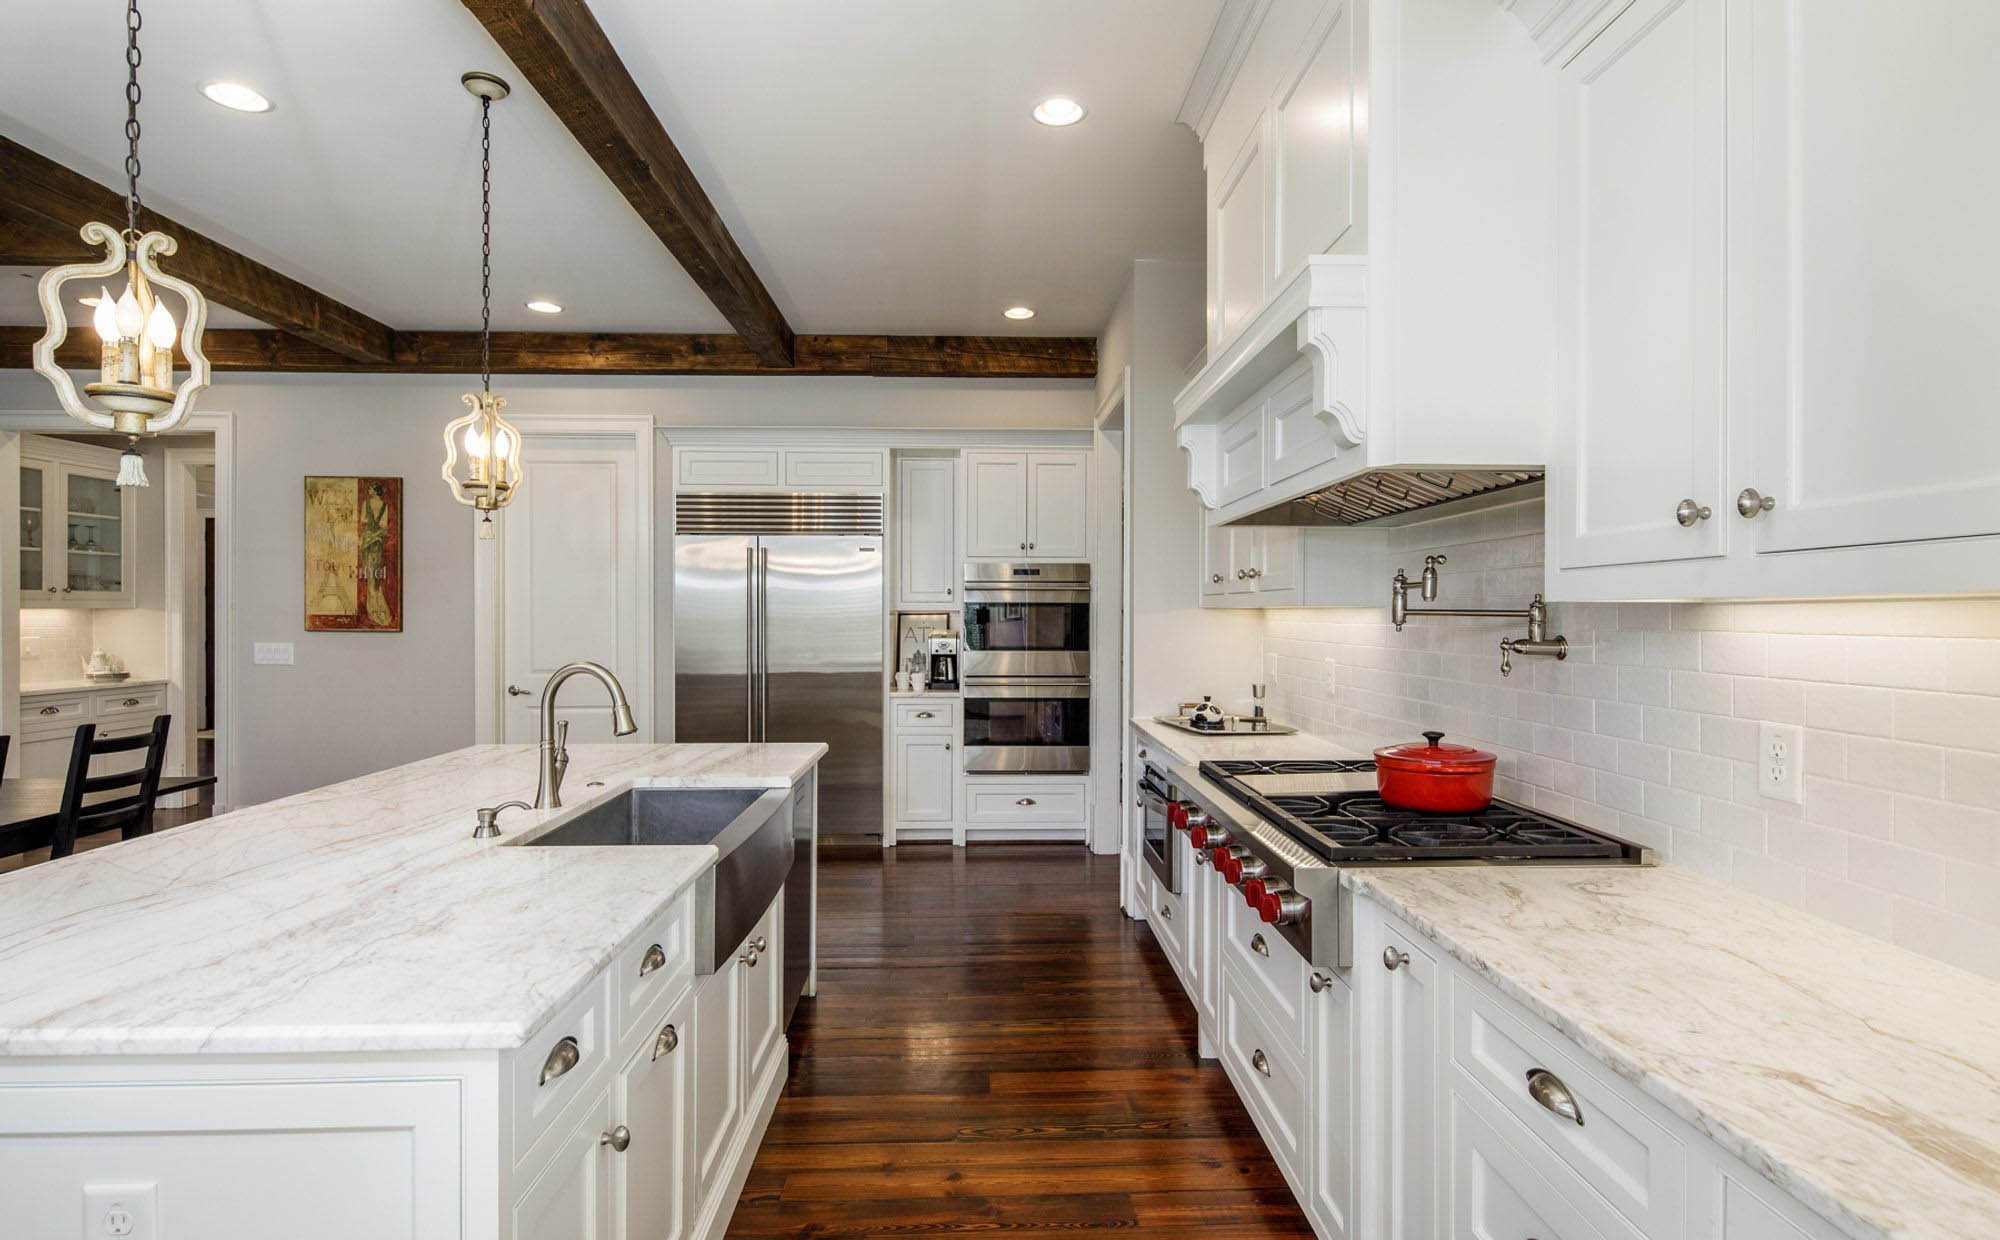 traditional kitchen design with a stainless steel farmhouse sink